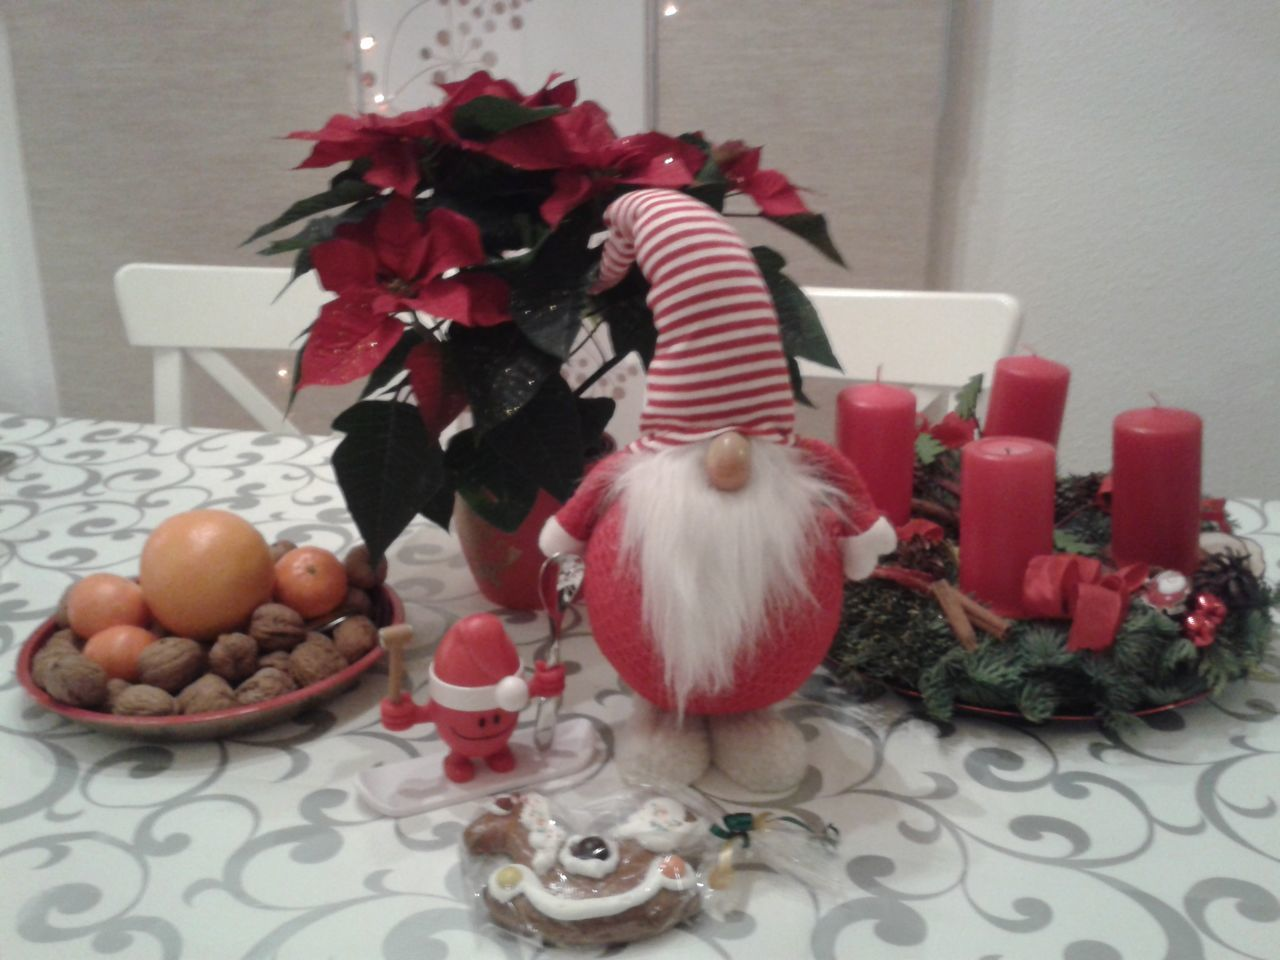 Schönen Nikolaus Enjoying Life Happy Nikolaus! Hello World At Home :)